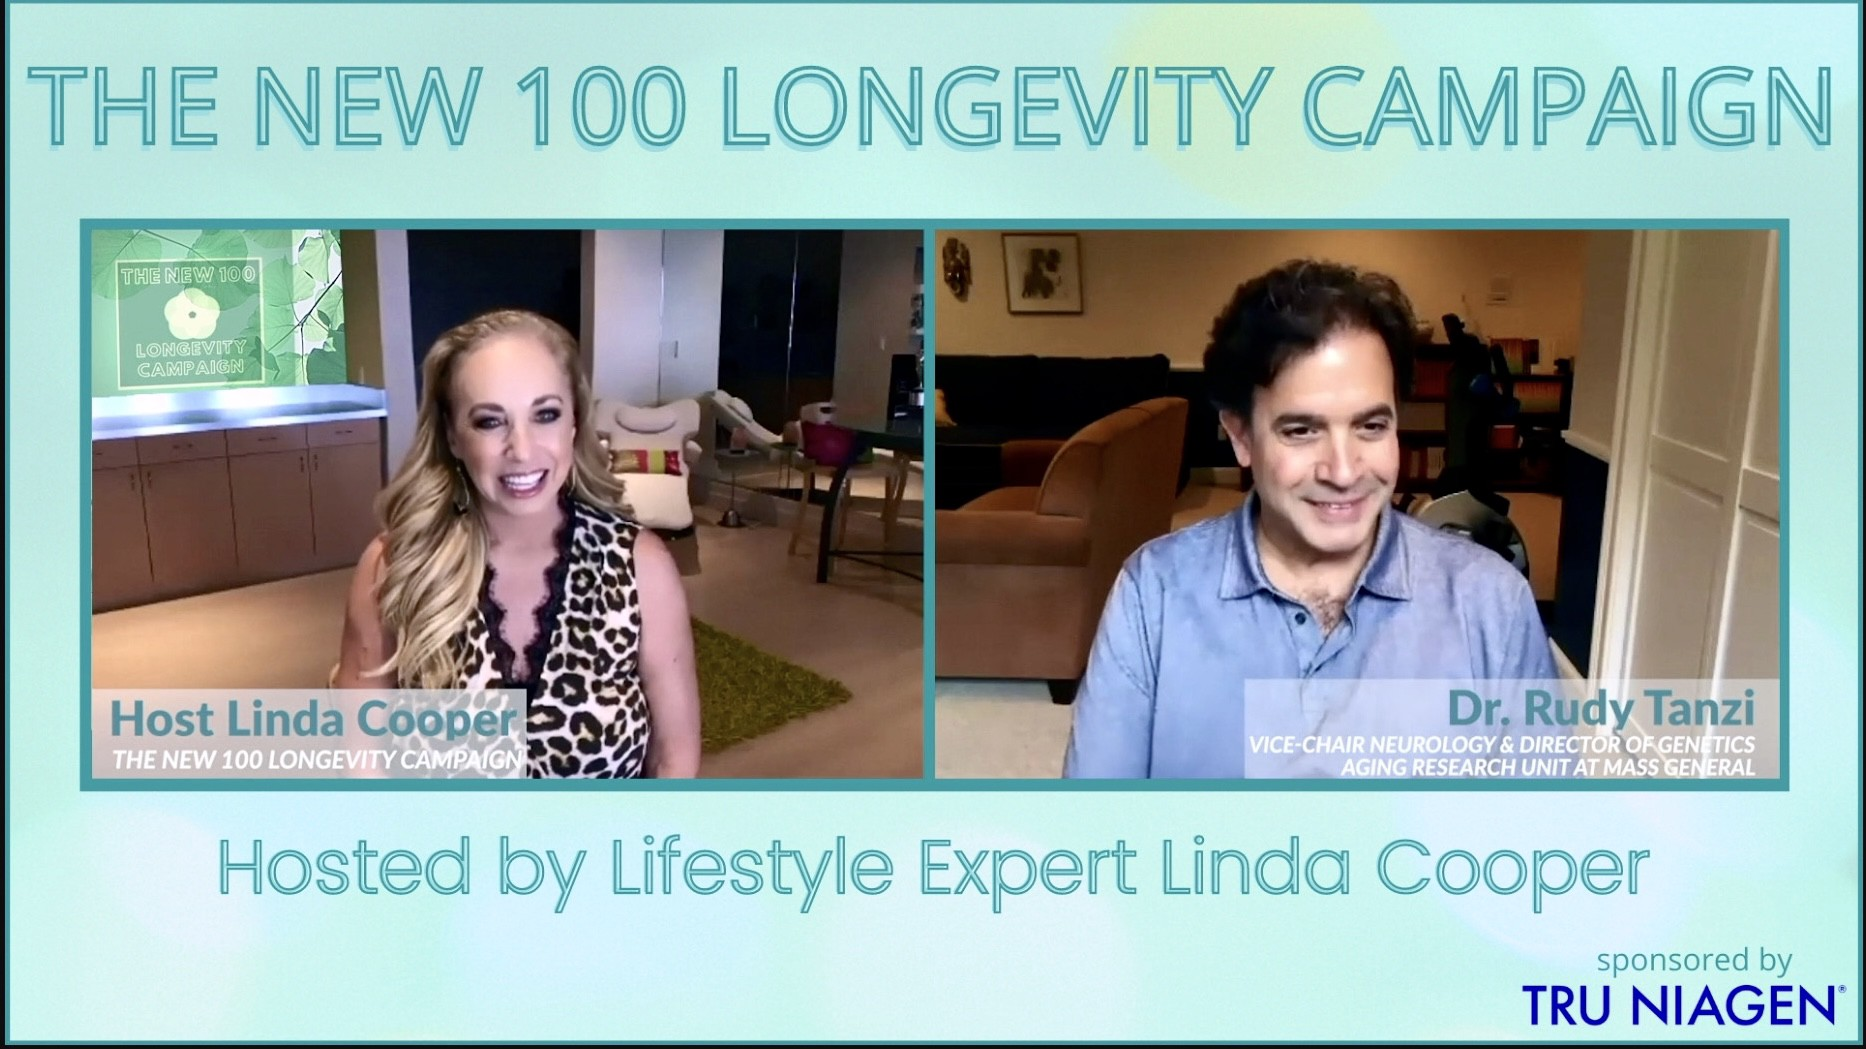 STOPPING ALZHEIMER'S: THE CURE & PREVENTION- EP5 THE NEW 100 LONGEVITY CAMPAIGN - cover